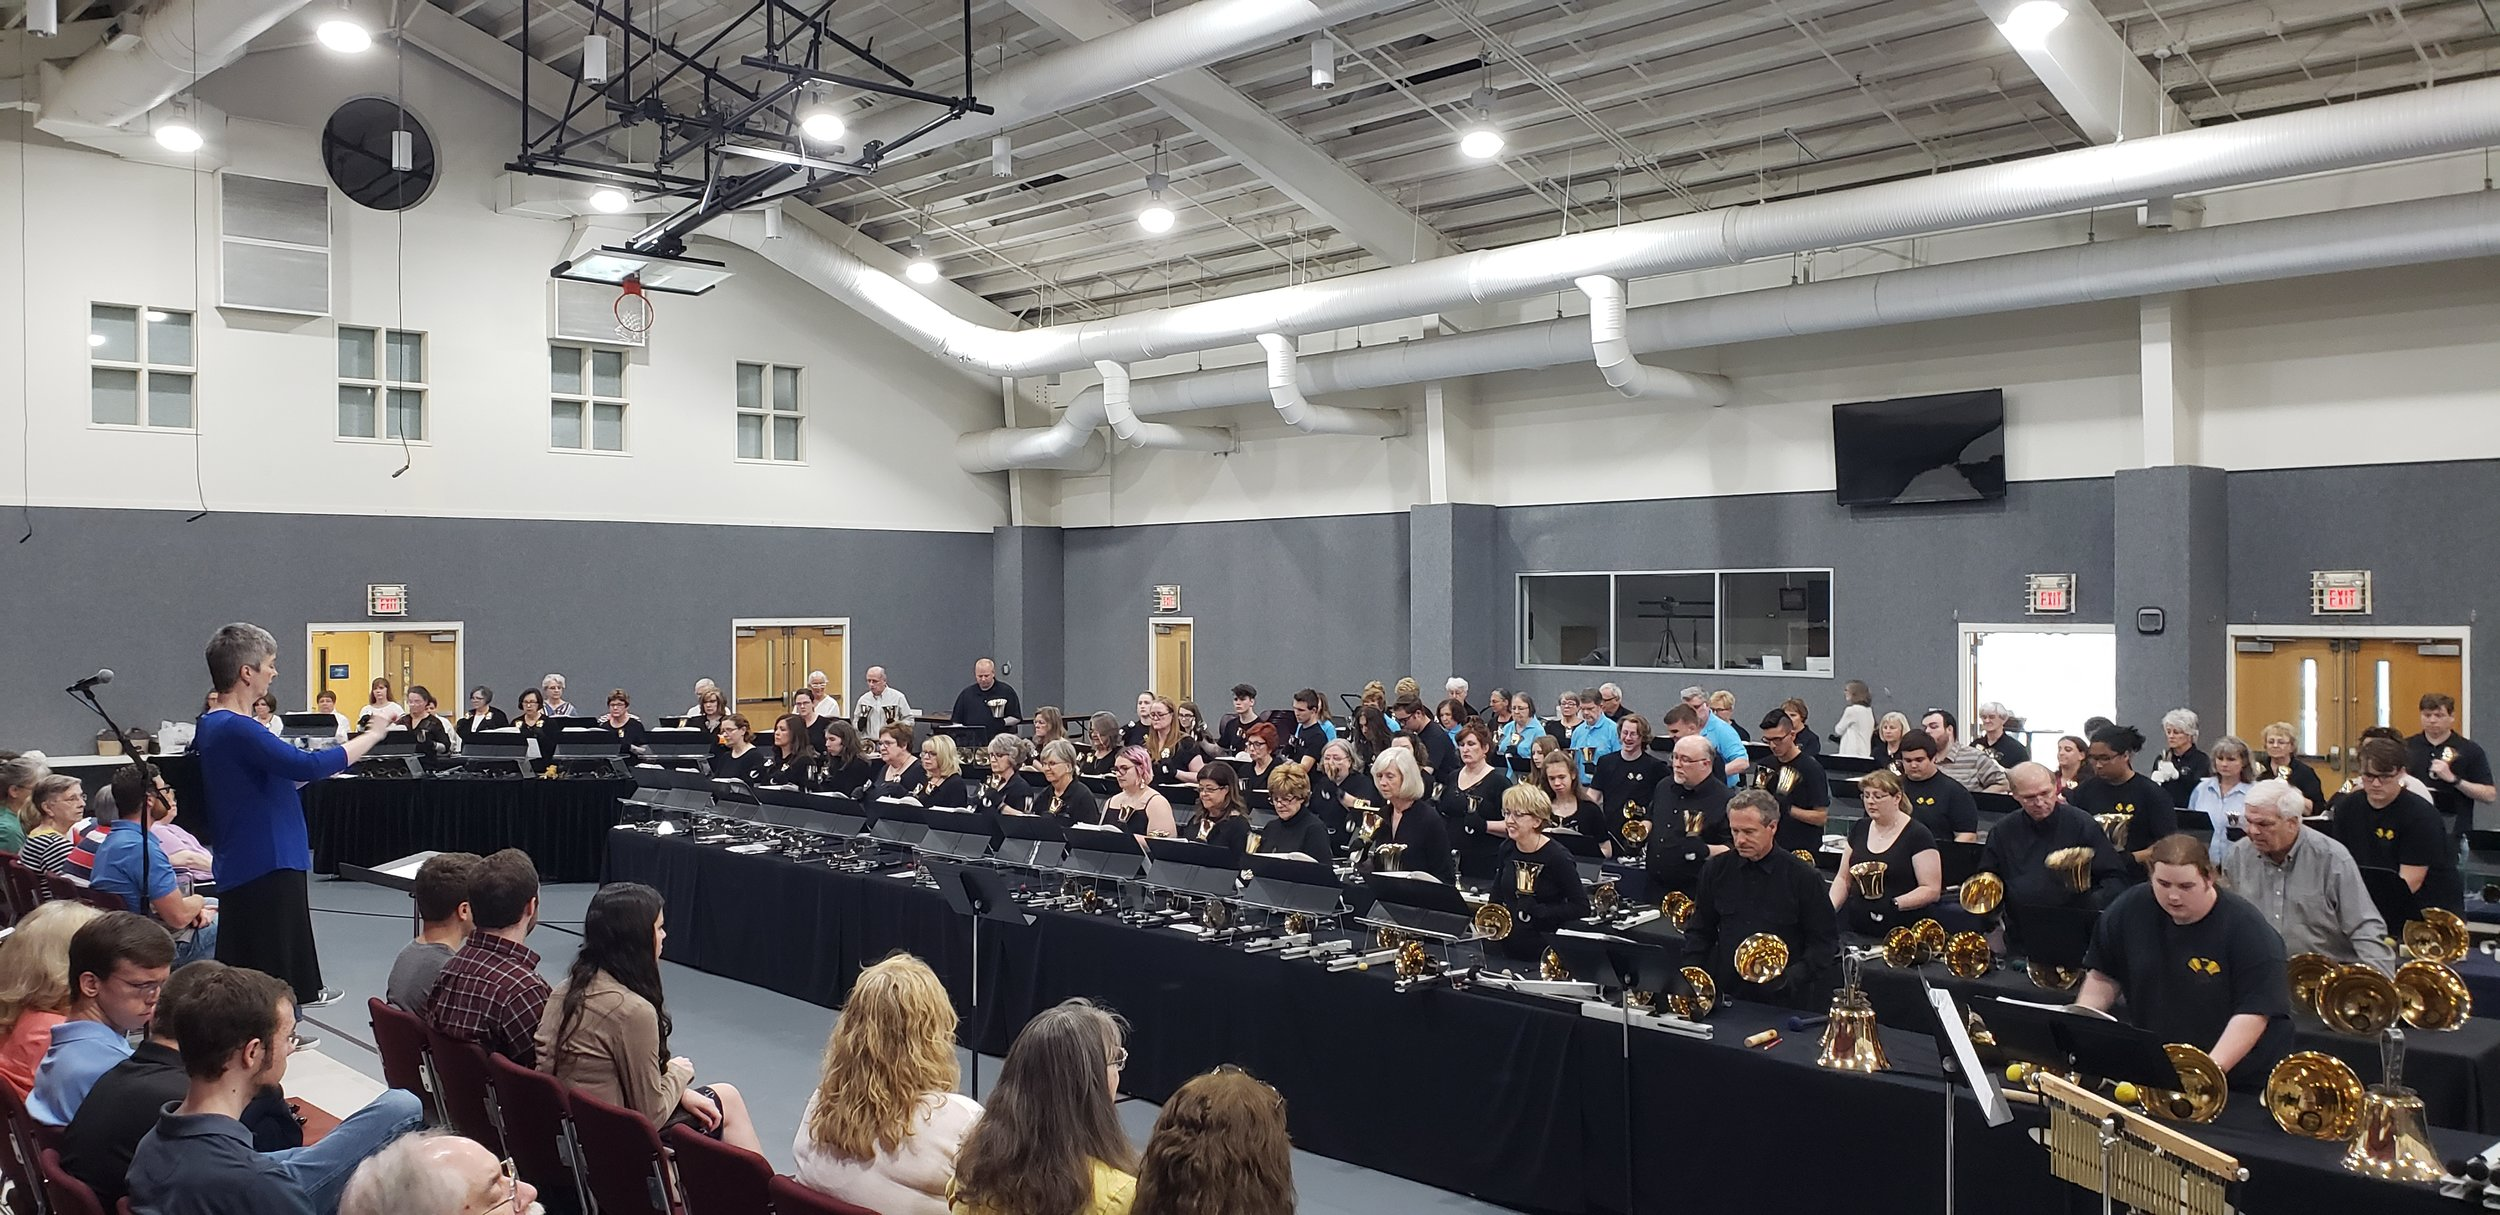 Our Festival - 2020 KNOX AREA HANDBELL FESTIVALLOCATION: Grace Lutheran Church, 9076 Middlebrook PikeKnoxville, TN 37923DATES: March 27 & 28, 2020CLINICIAN: Stevie BerrymanCOST: $150 per choir or $25 per ringer up to 6 ringers in an ensemble